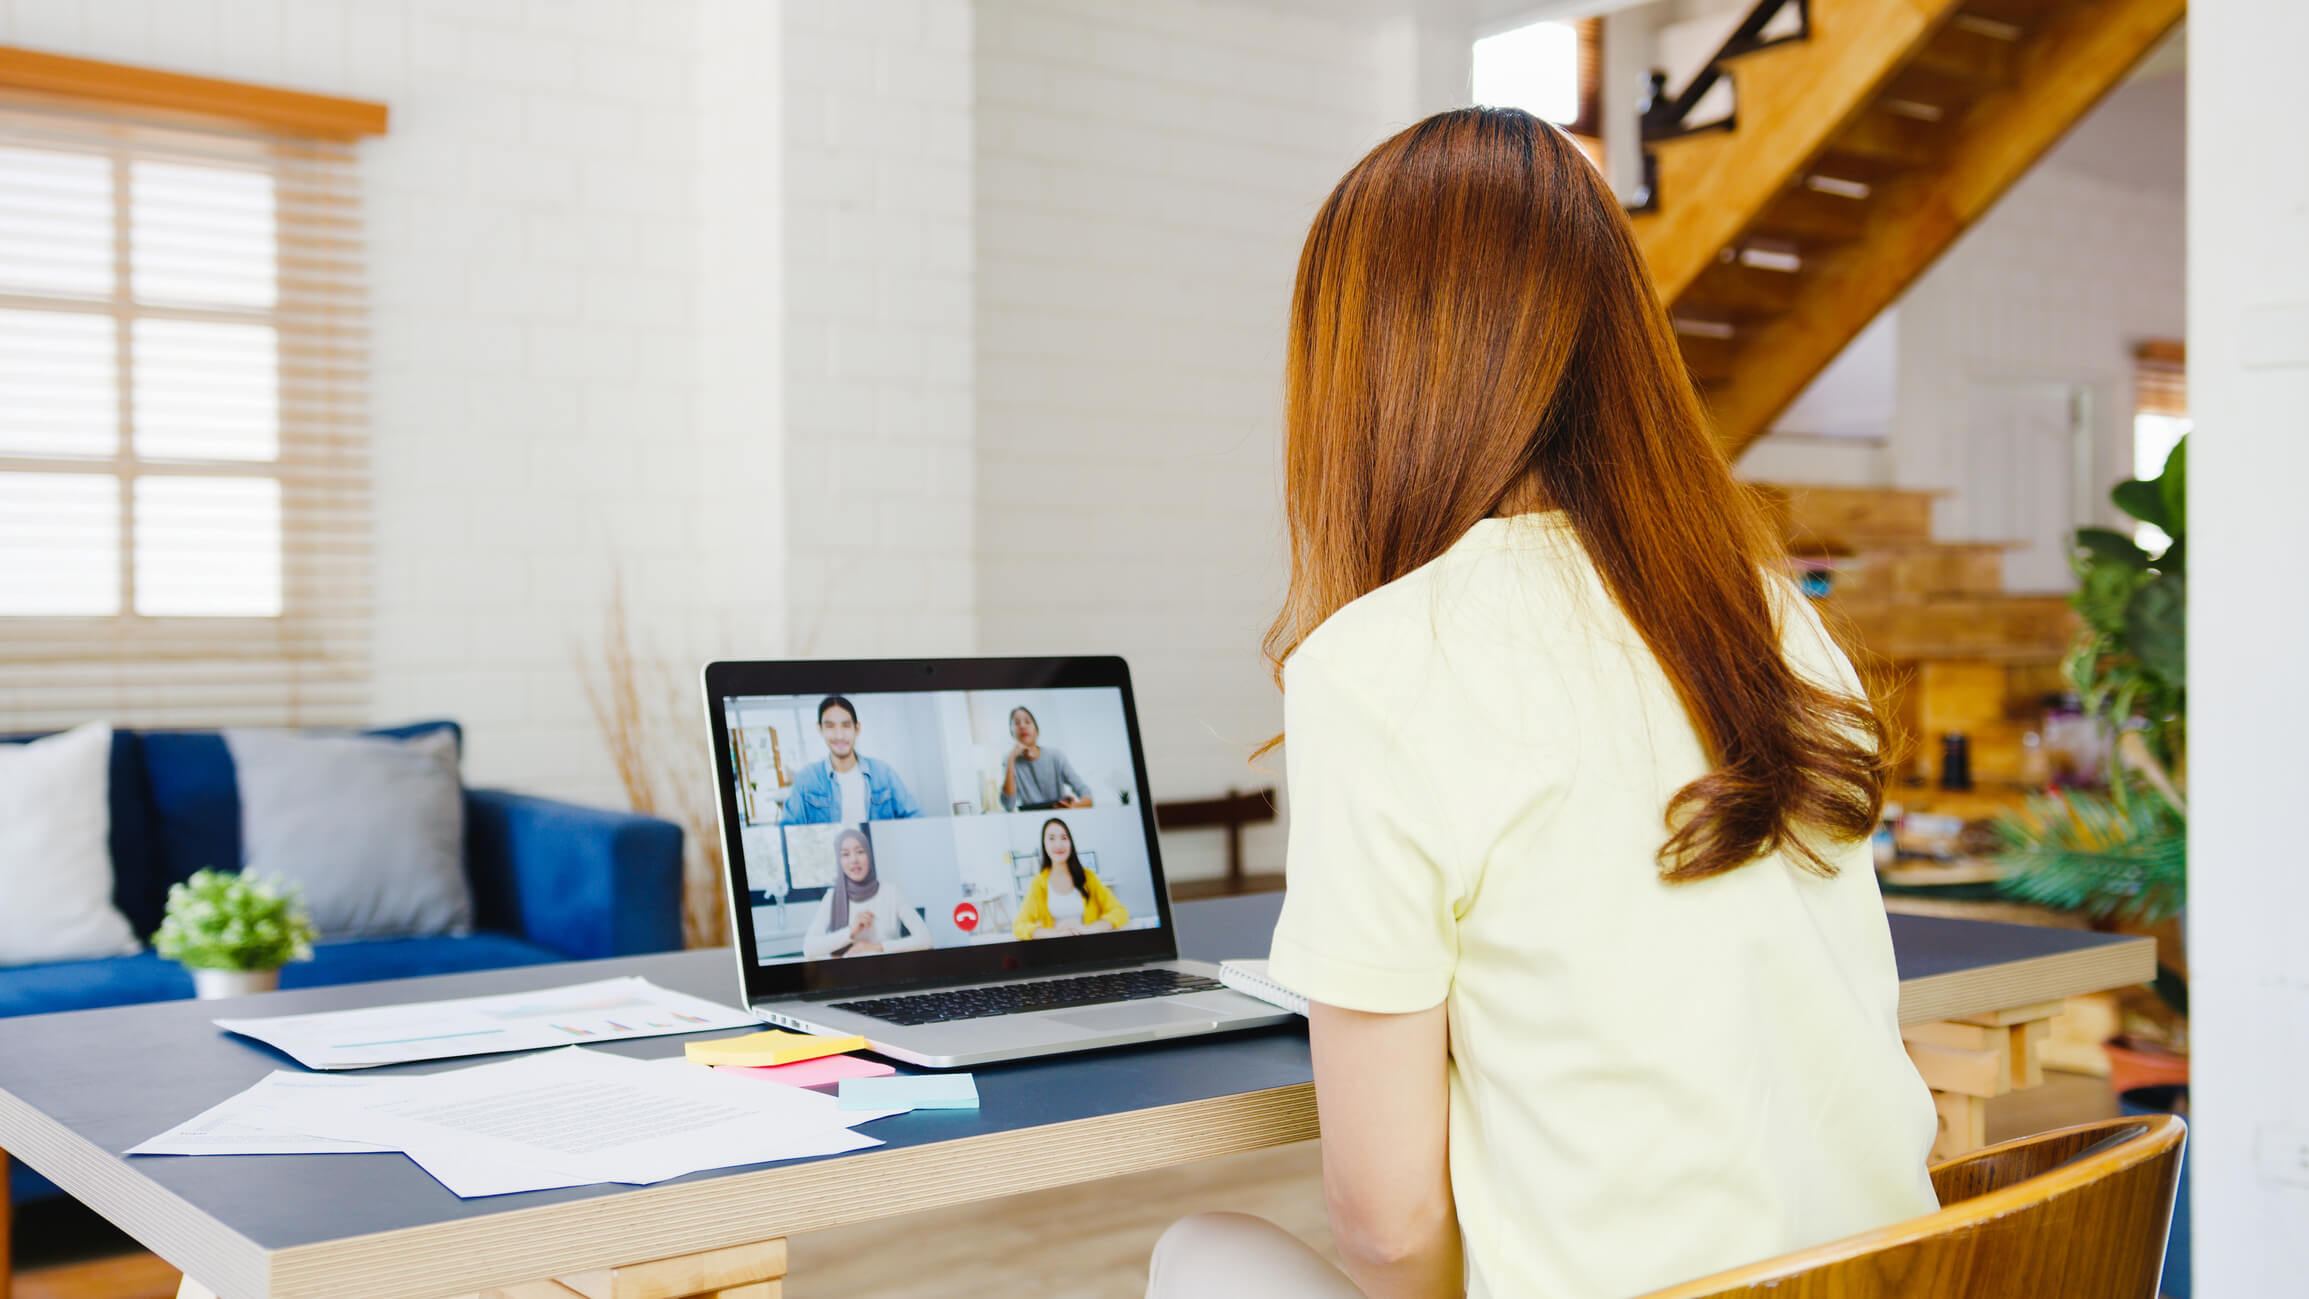 Remote worker on a Zoom call